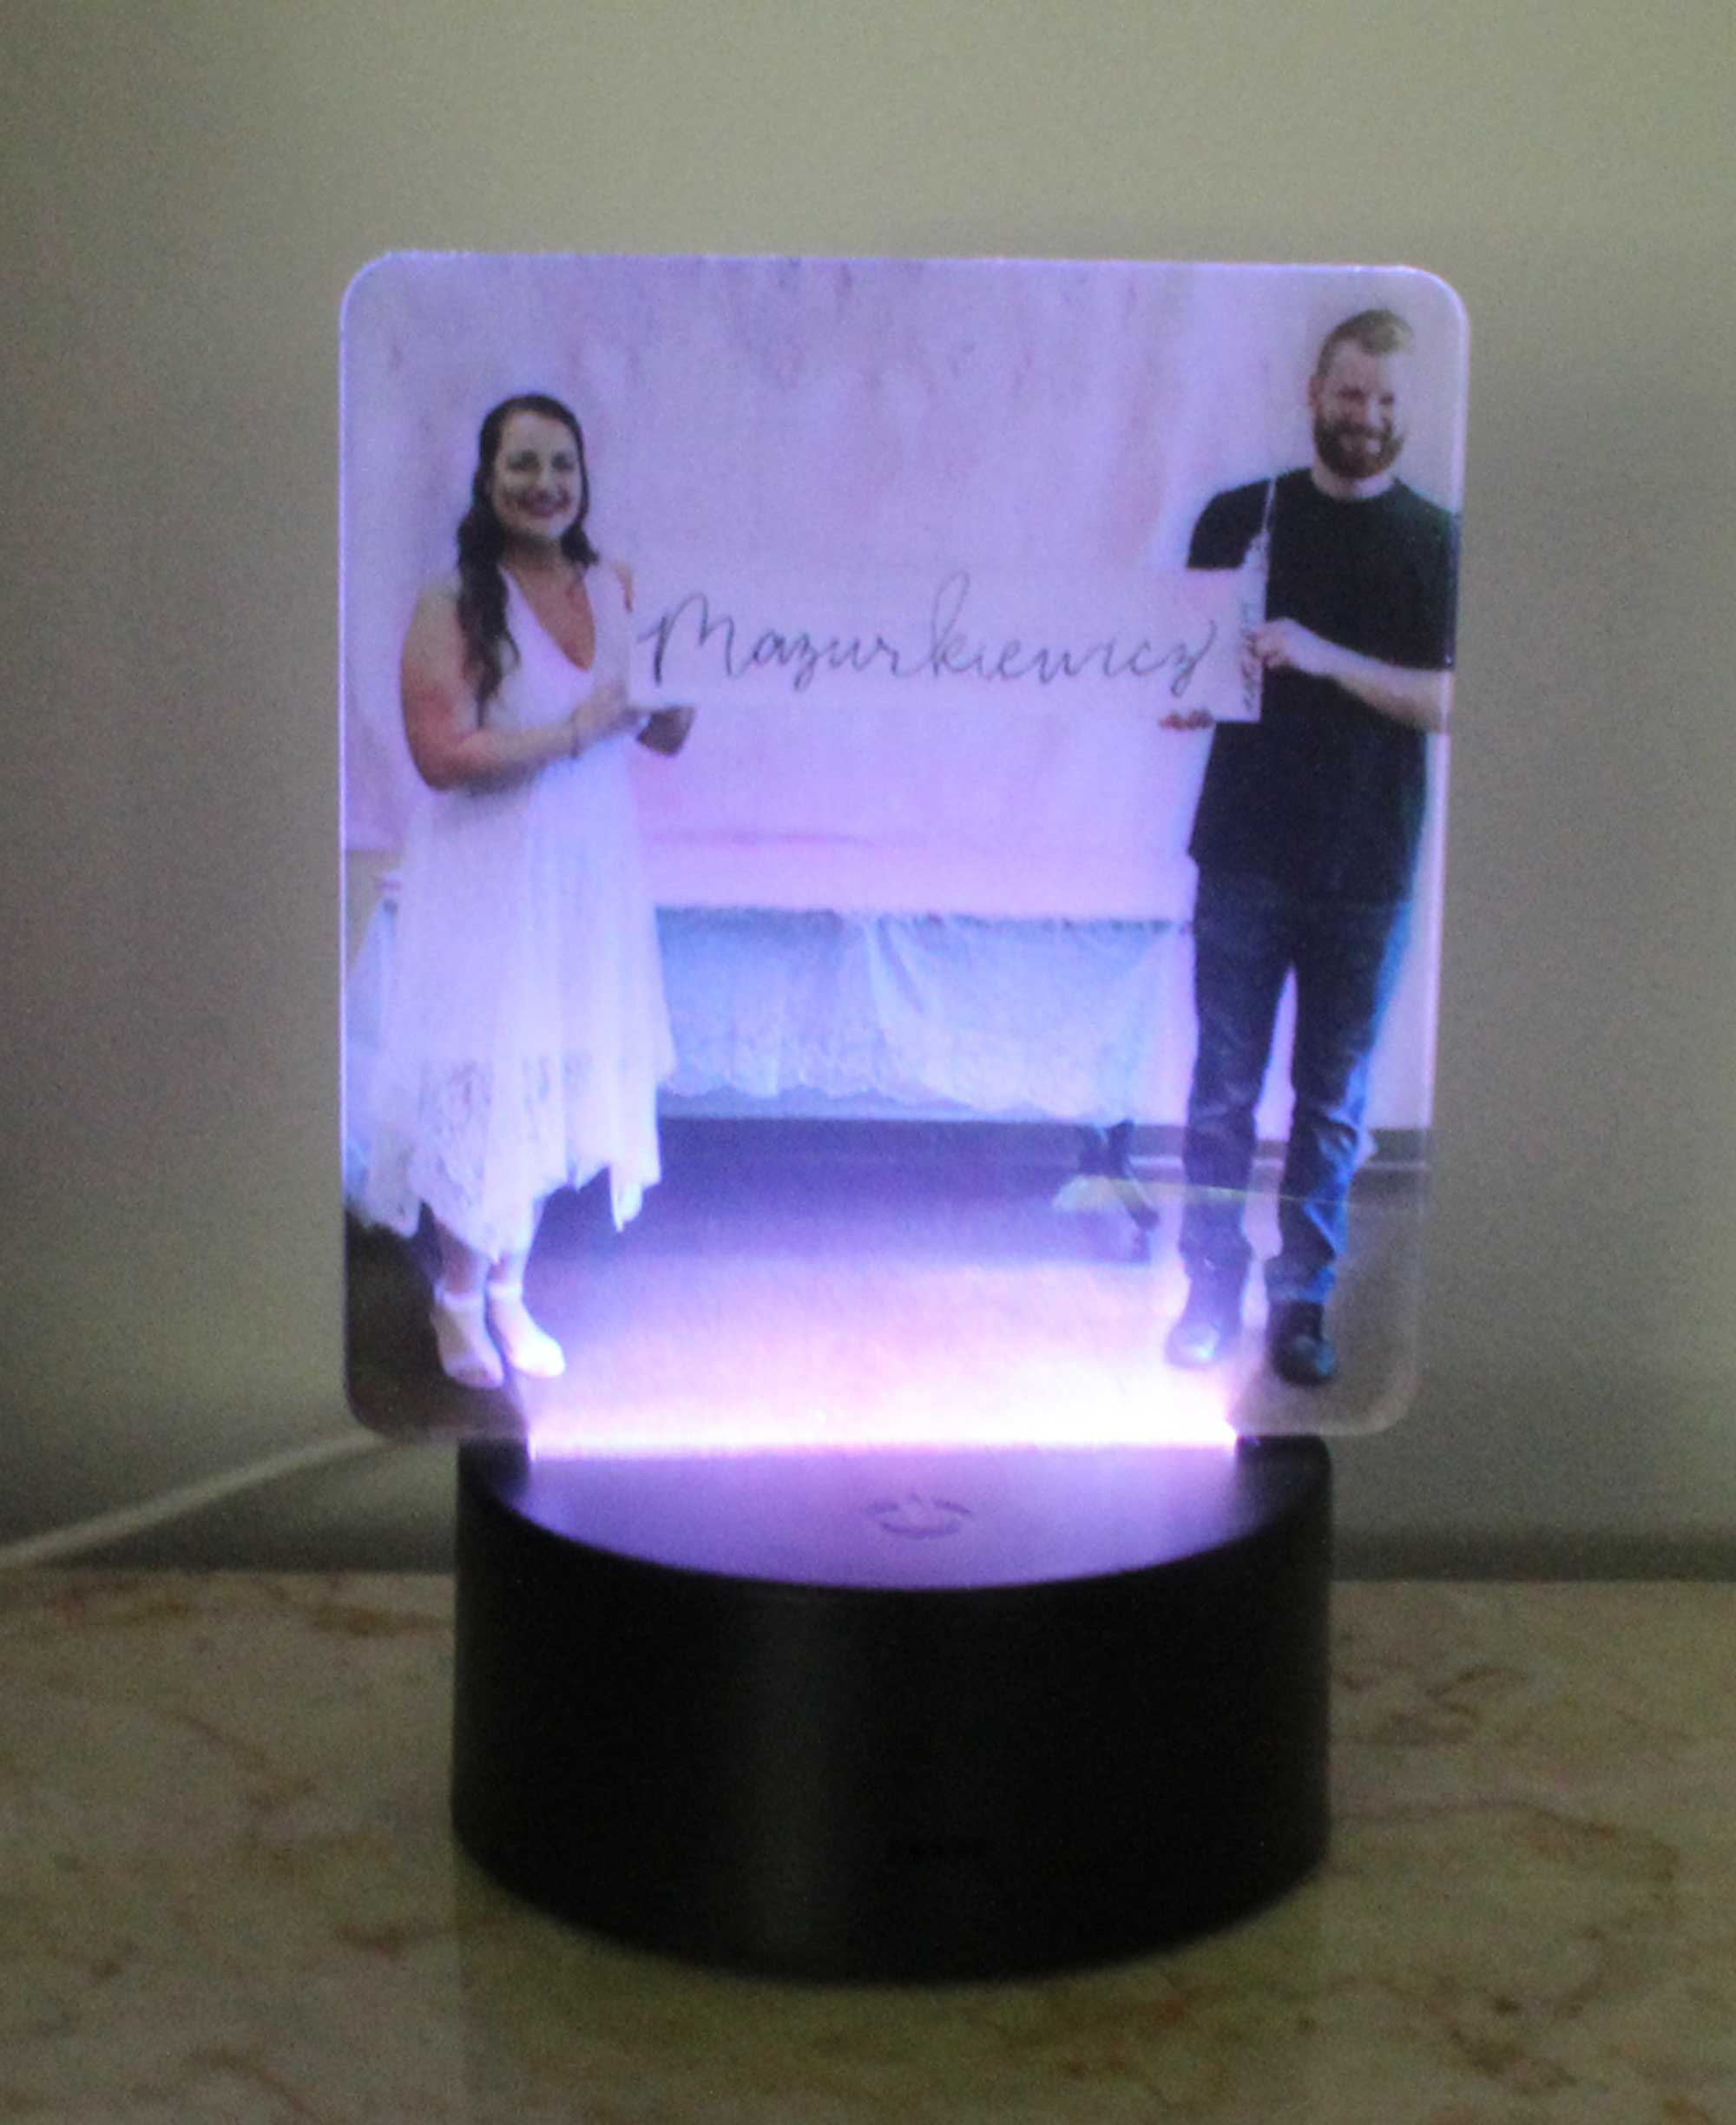 Personalized Photo Night Light, UV Printed Acrylic USB/110V/Battery